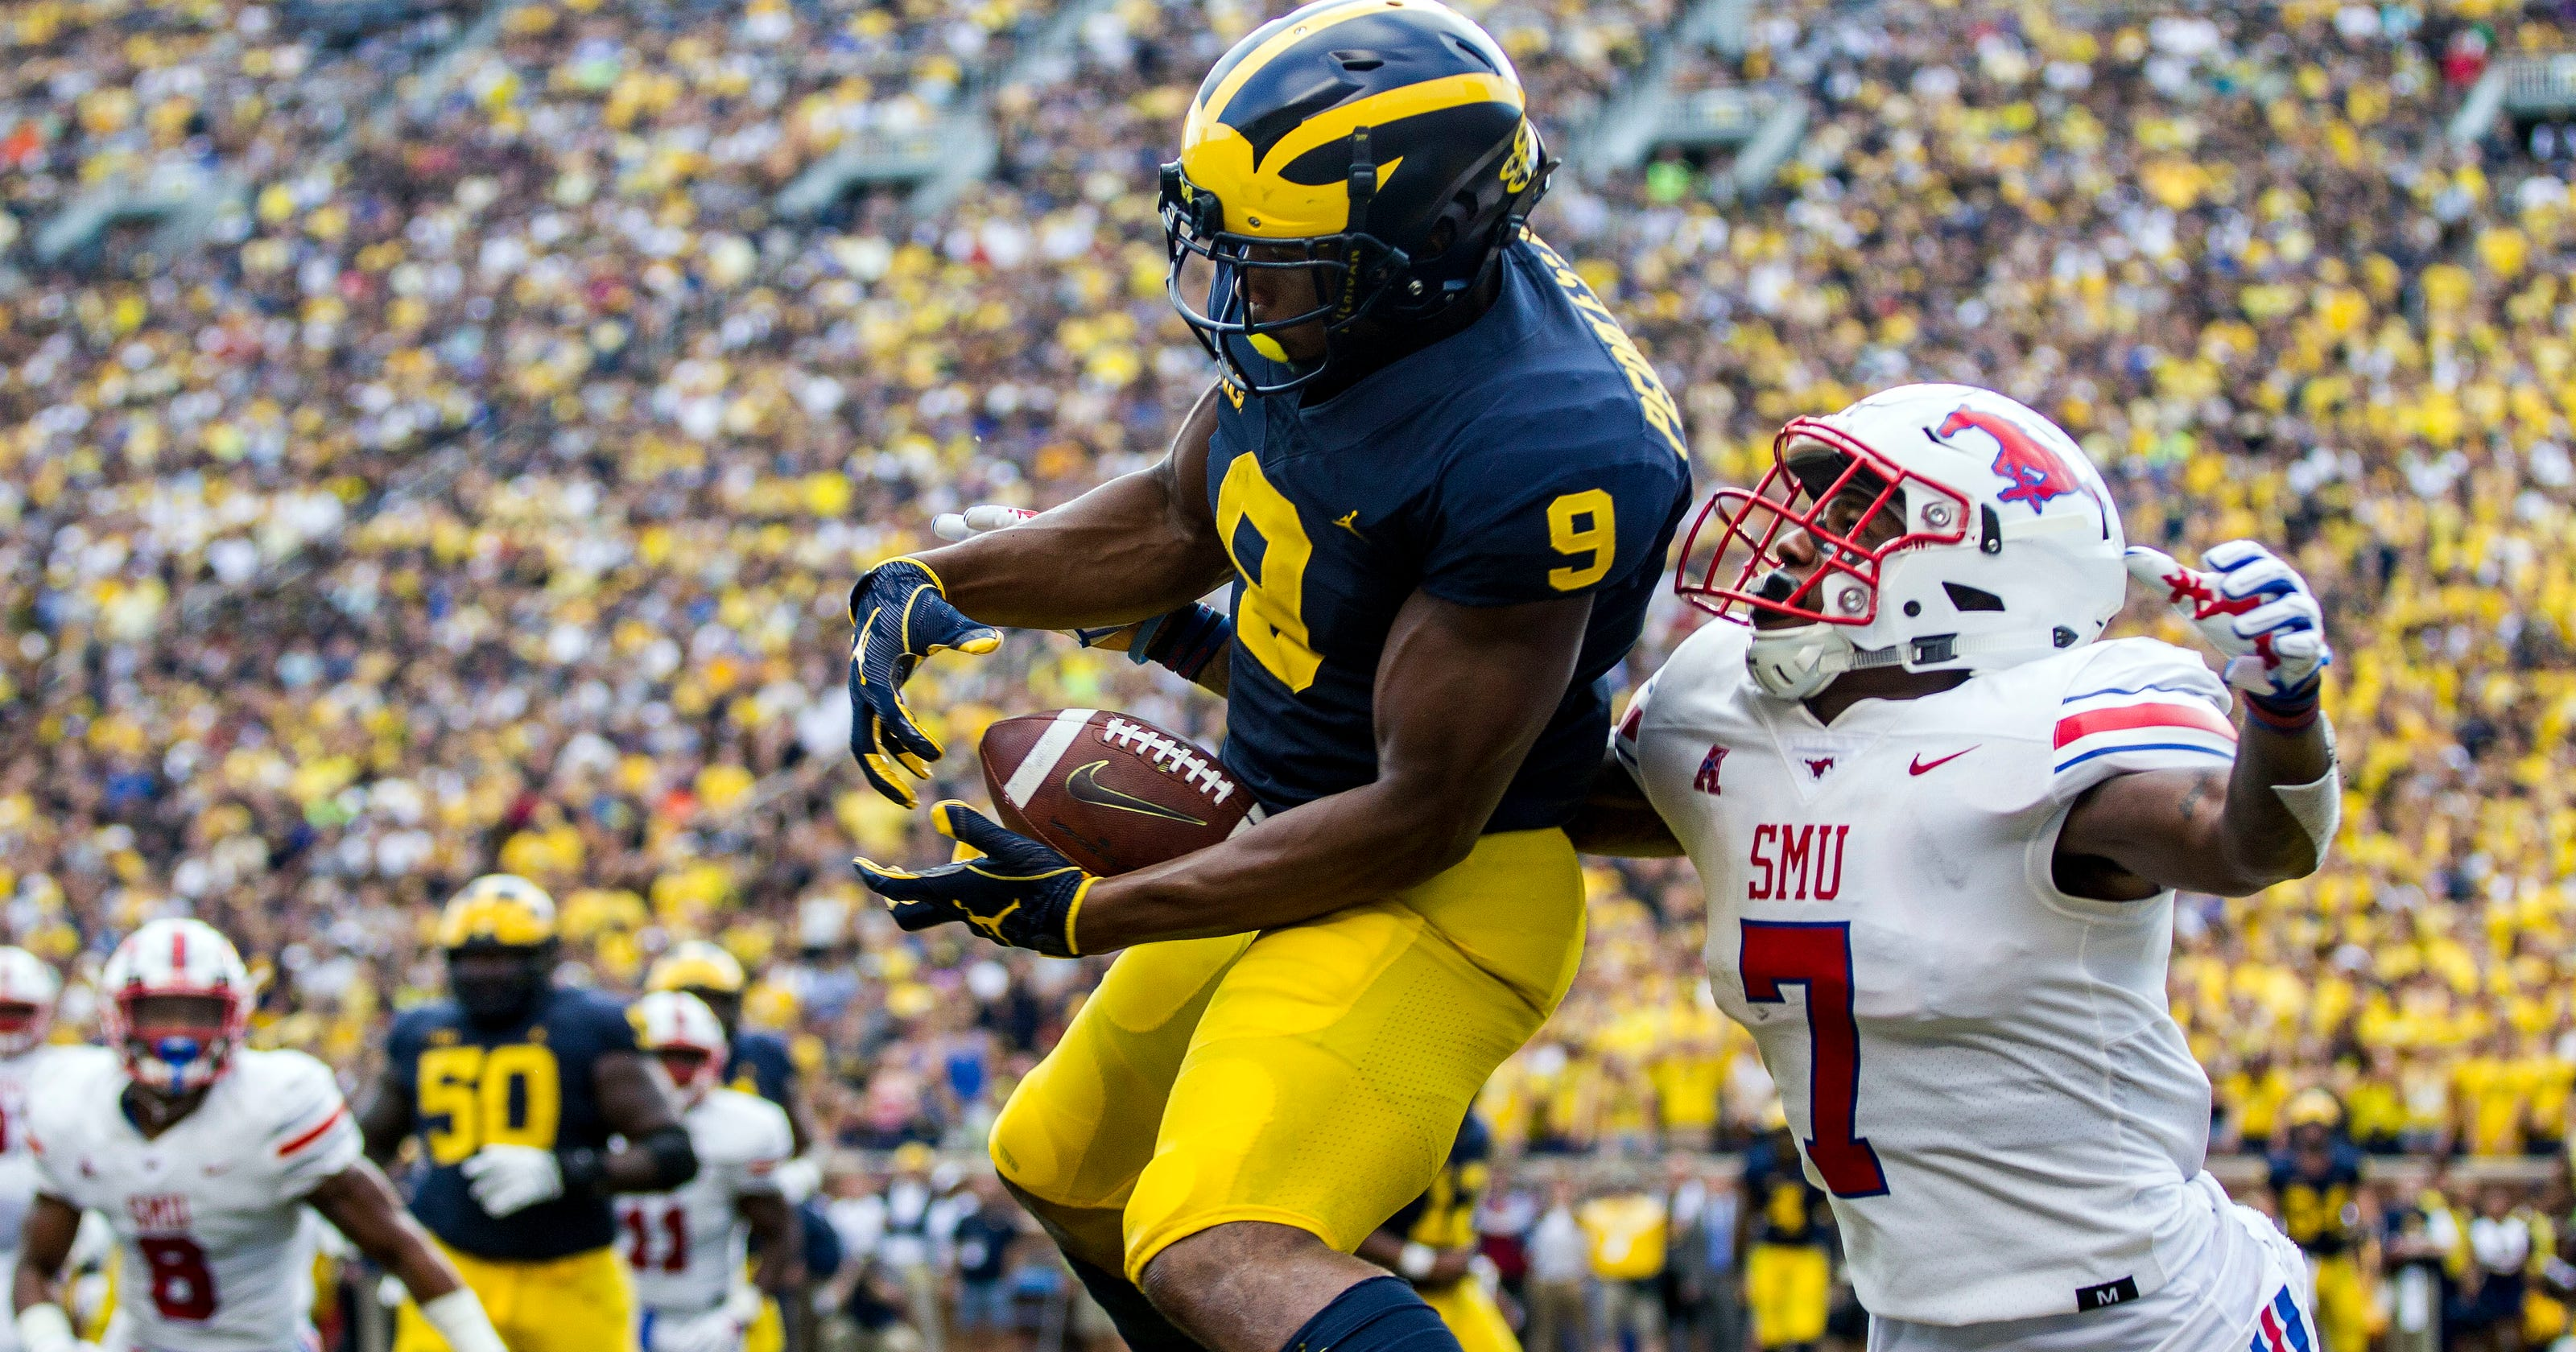 Michigan opens Big Ten play eyeing end to title drought